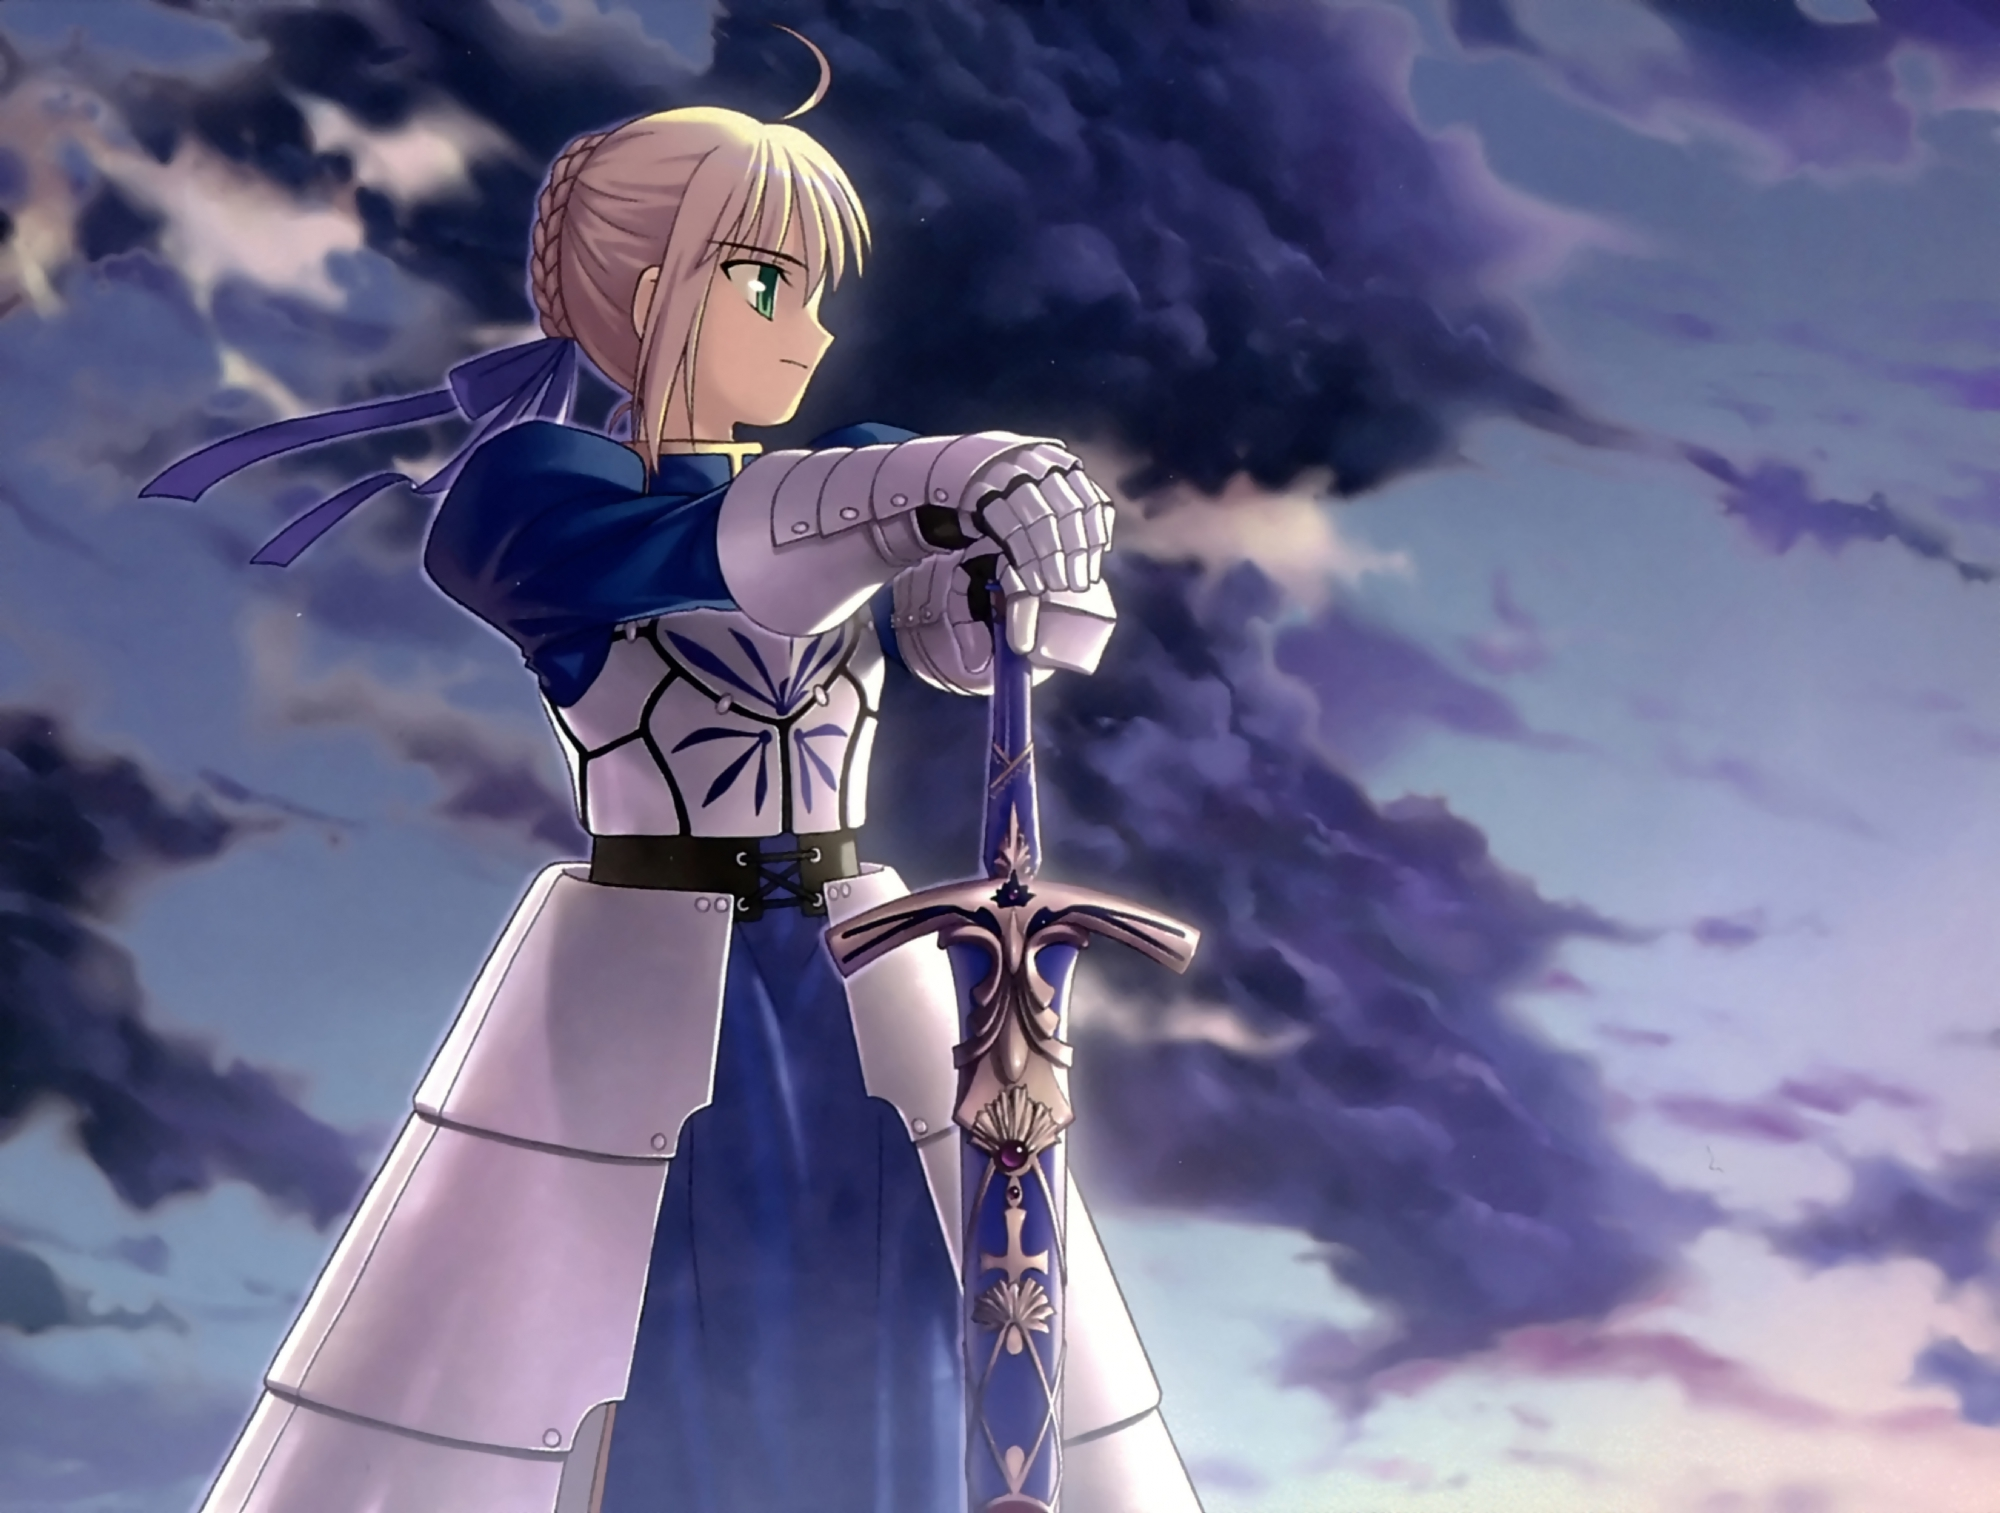 fate/stay_night saber